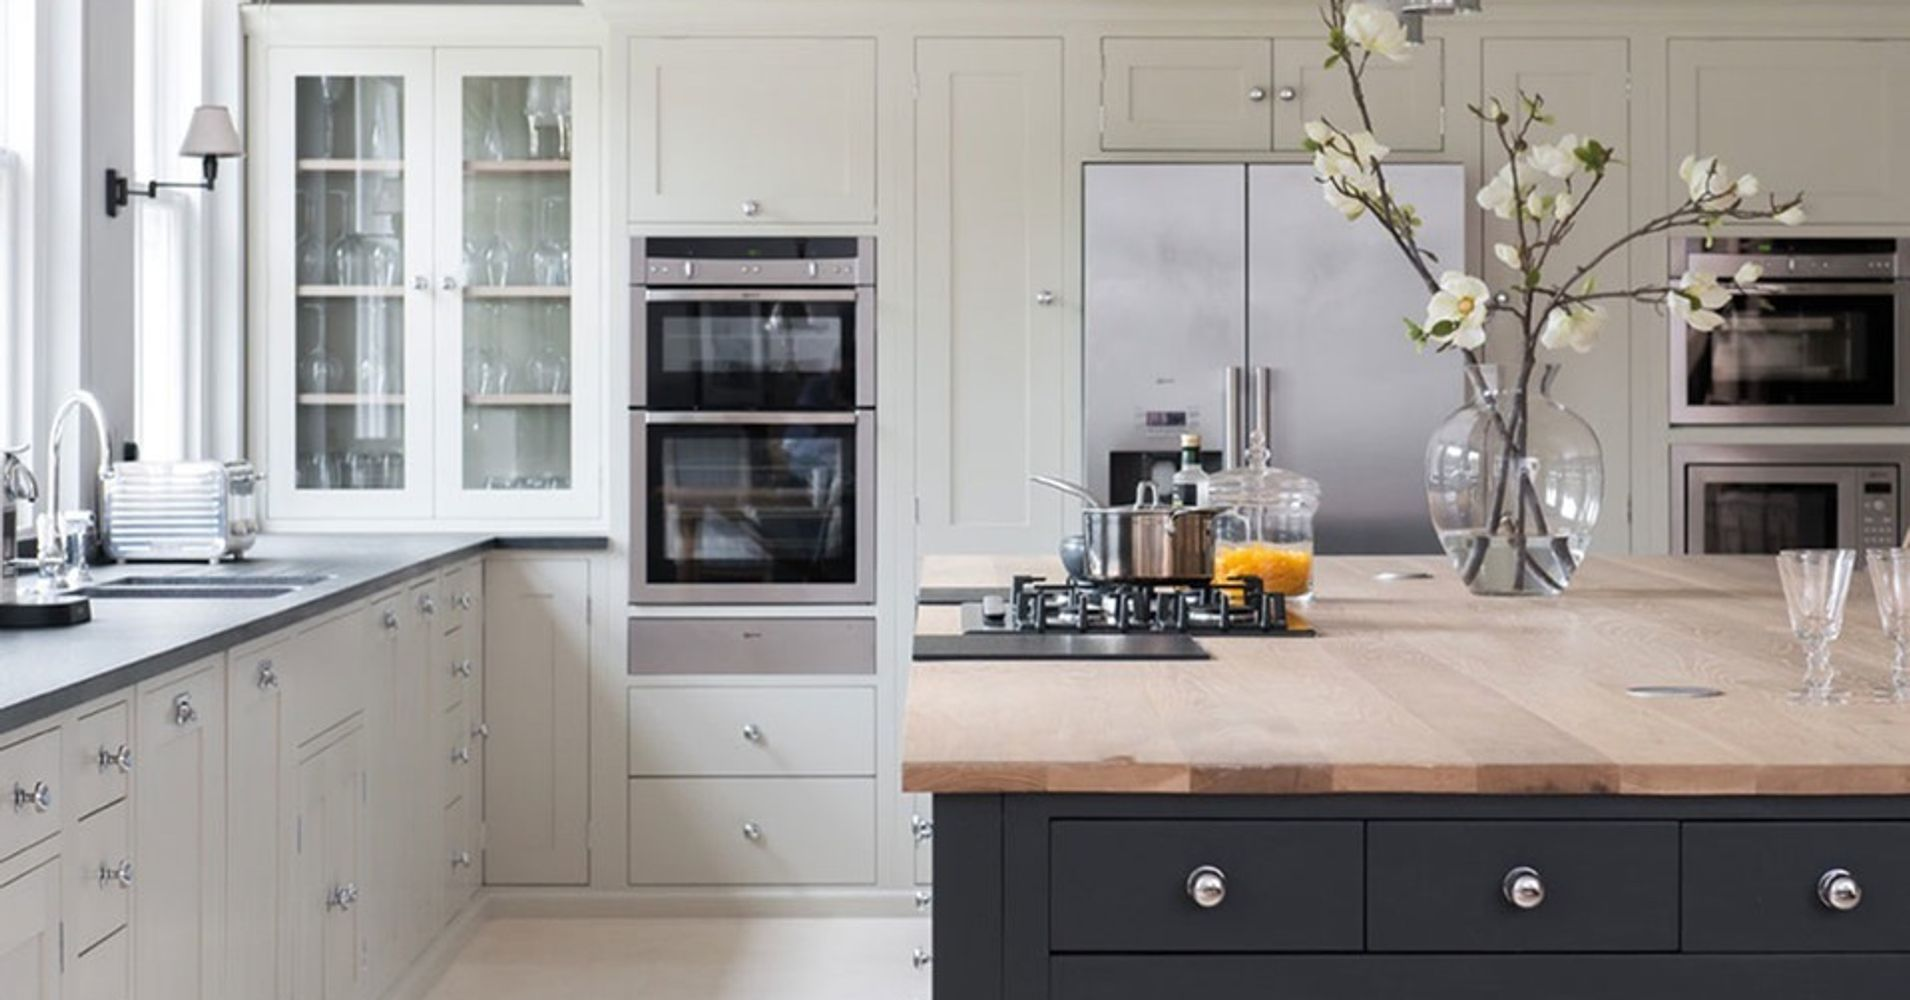 6 kitchen cabinet amp storage tips from design experts 6 kitchen cabinet color trends decorated life